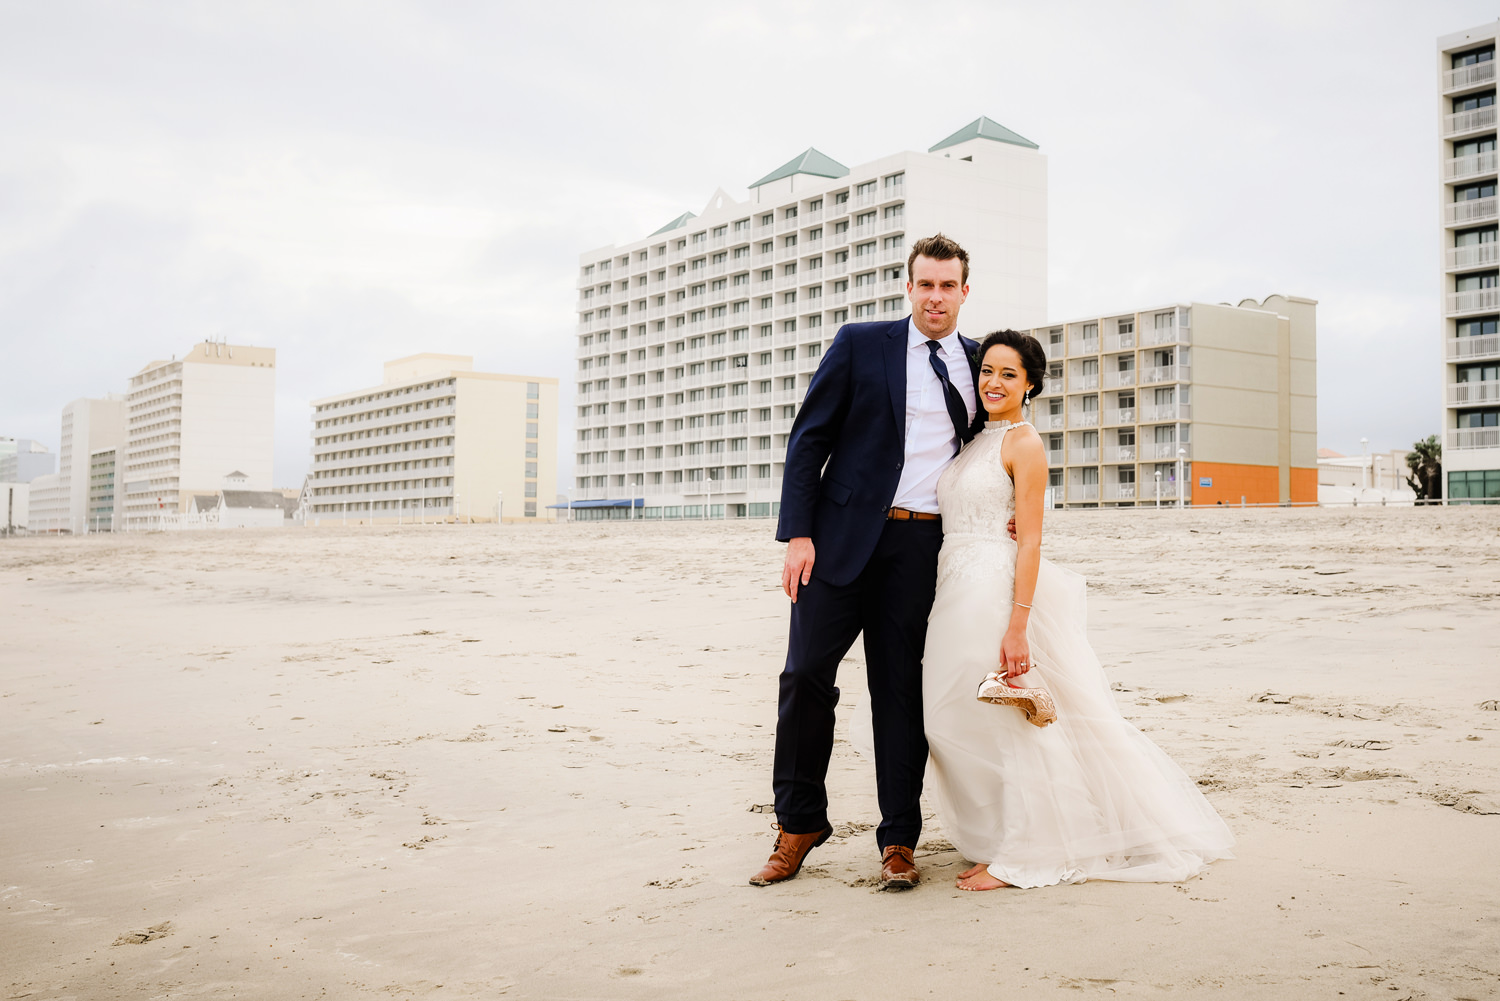 bride-and-groom-on-the-beach-virginia-beach-oceanfront-hyatt-house-wedding-melissa-bliss-photography.jpg